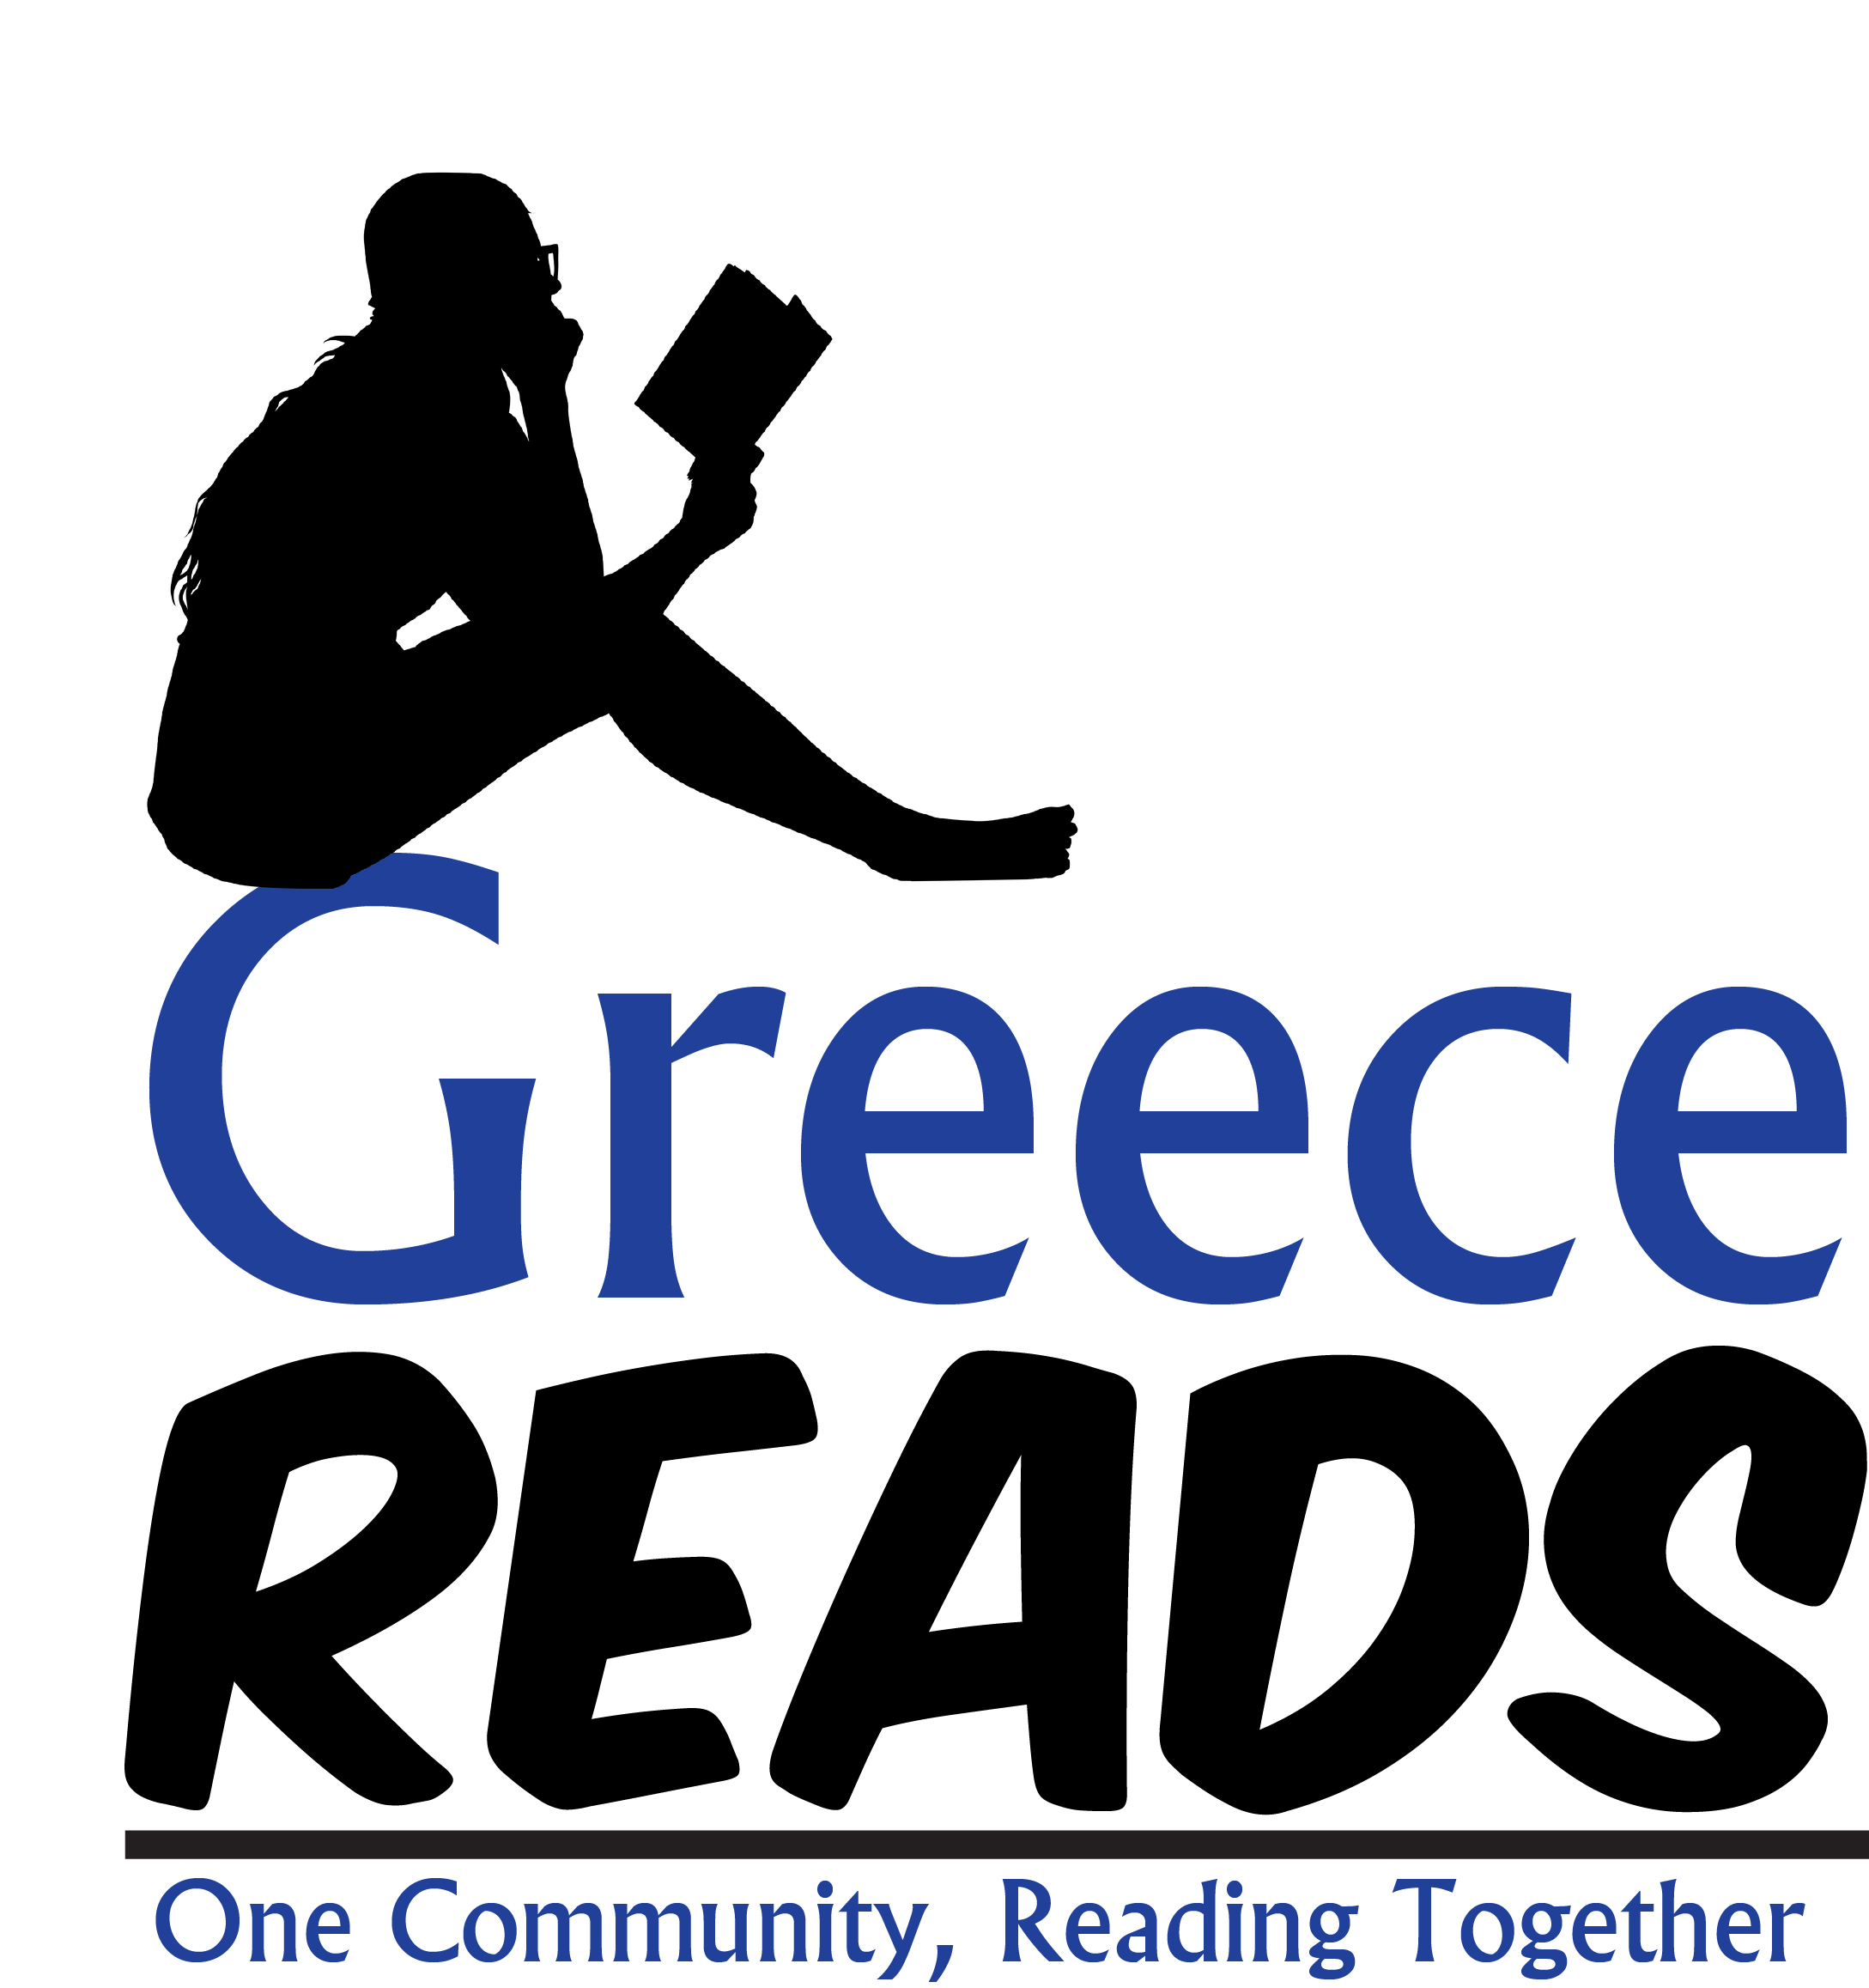 Greece Reads color